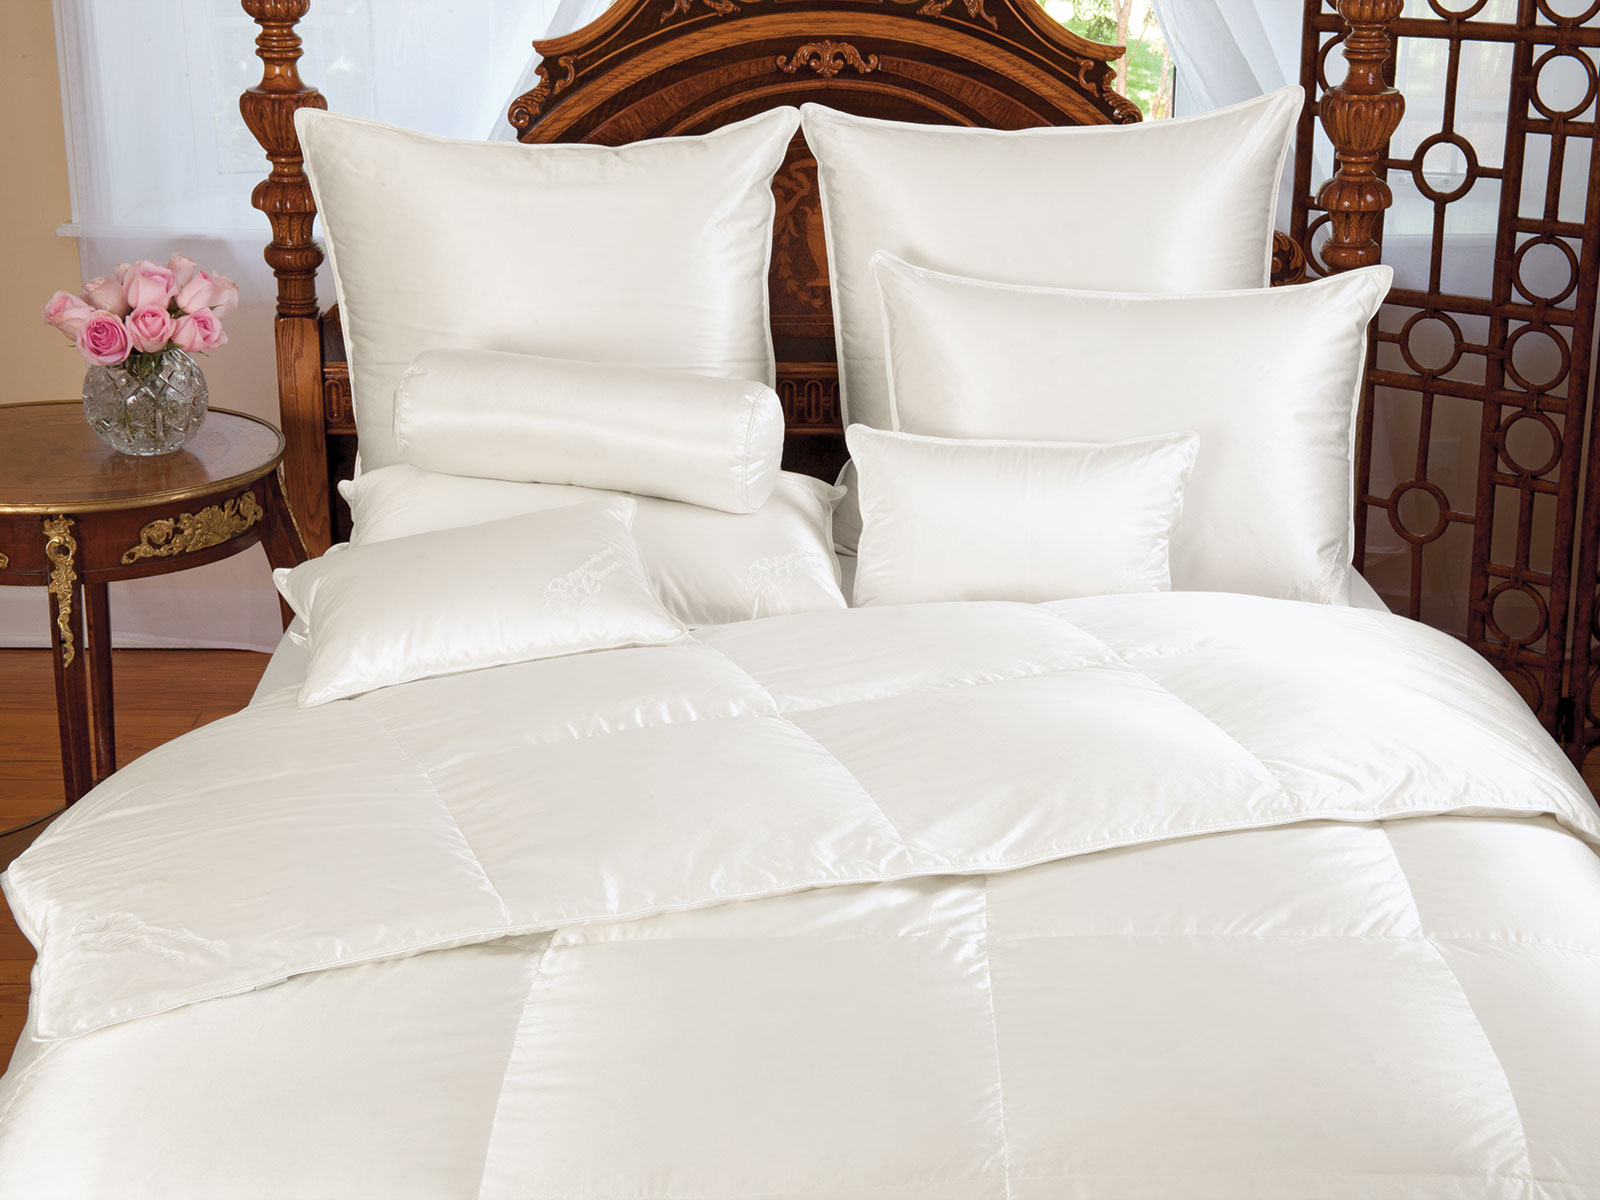 Dynasty Down Comforters and Pillows